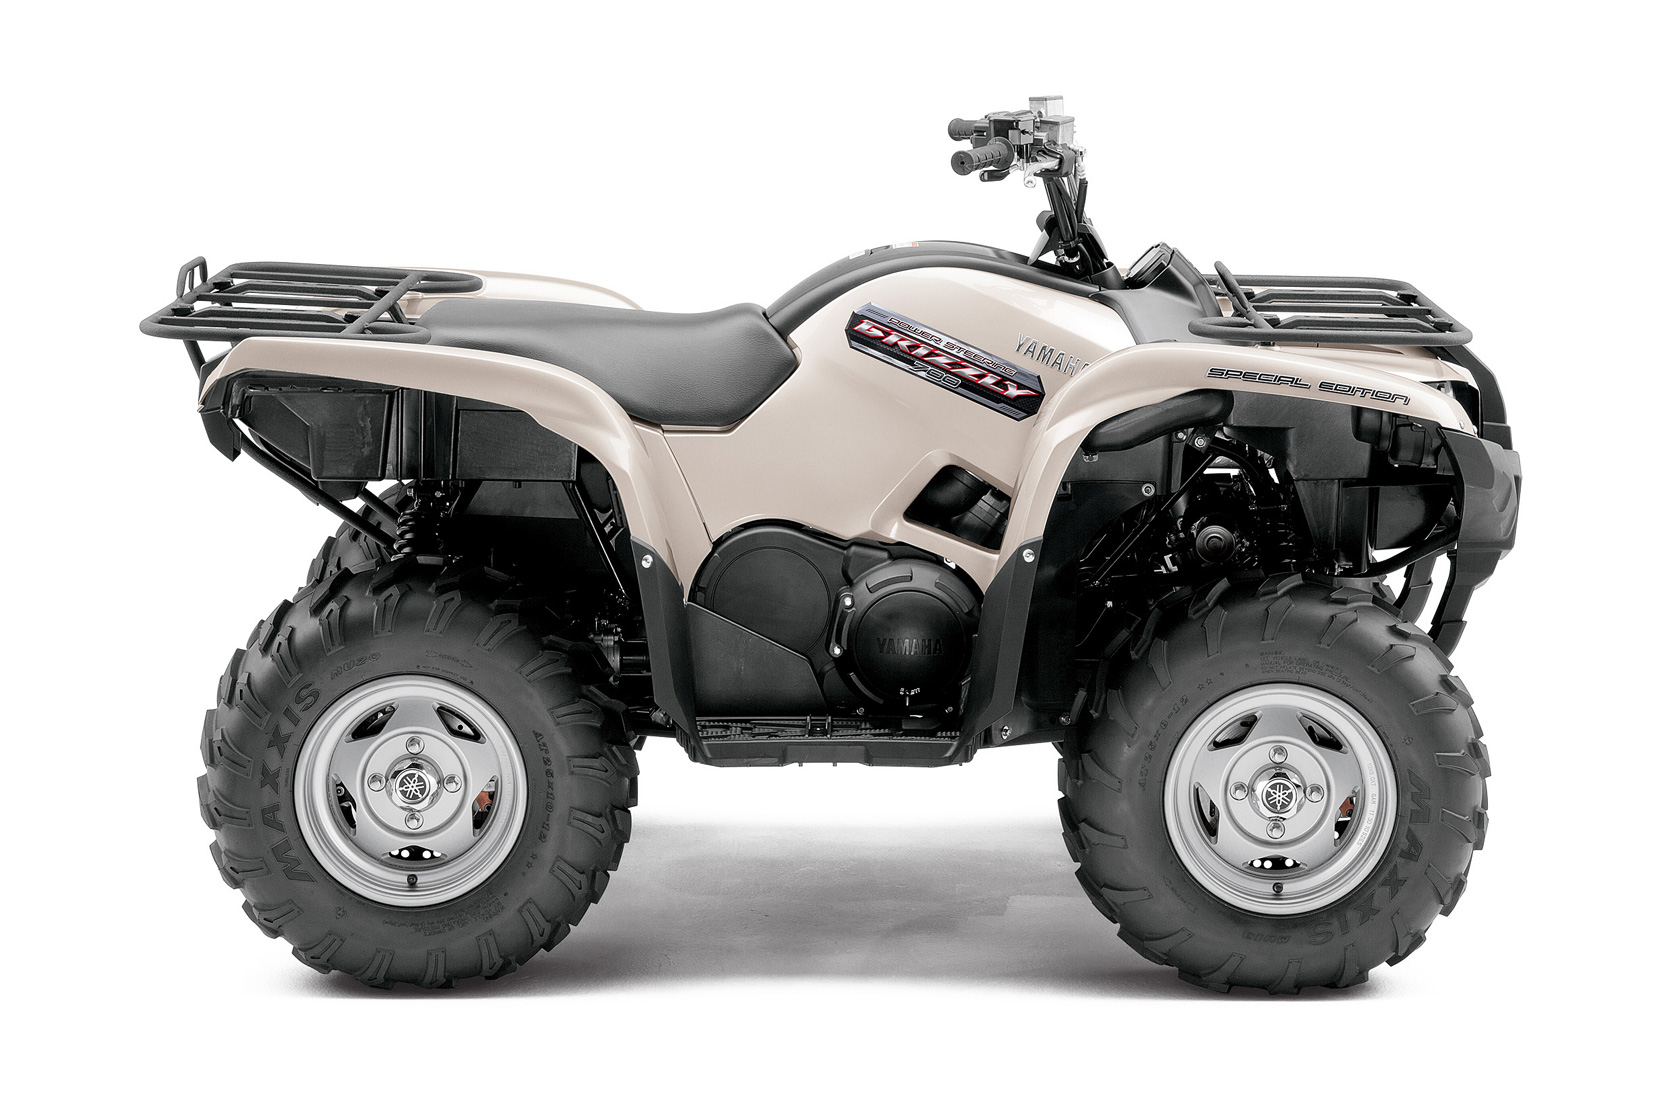 ... ATV Models --- 2012 Yamaha Grizzly 700 FI Auto 4x4 EPS Special Edition